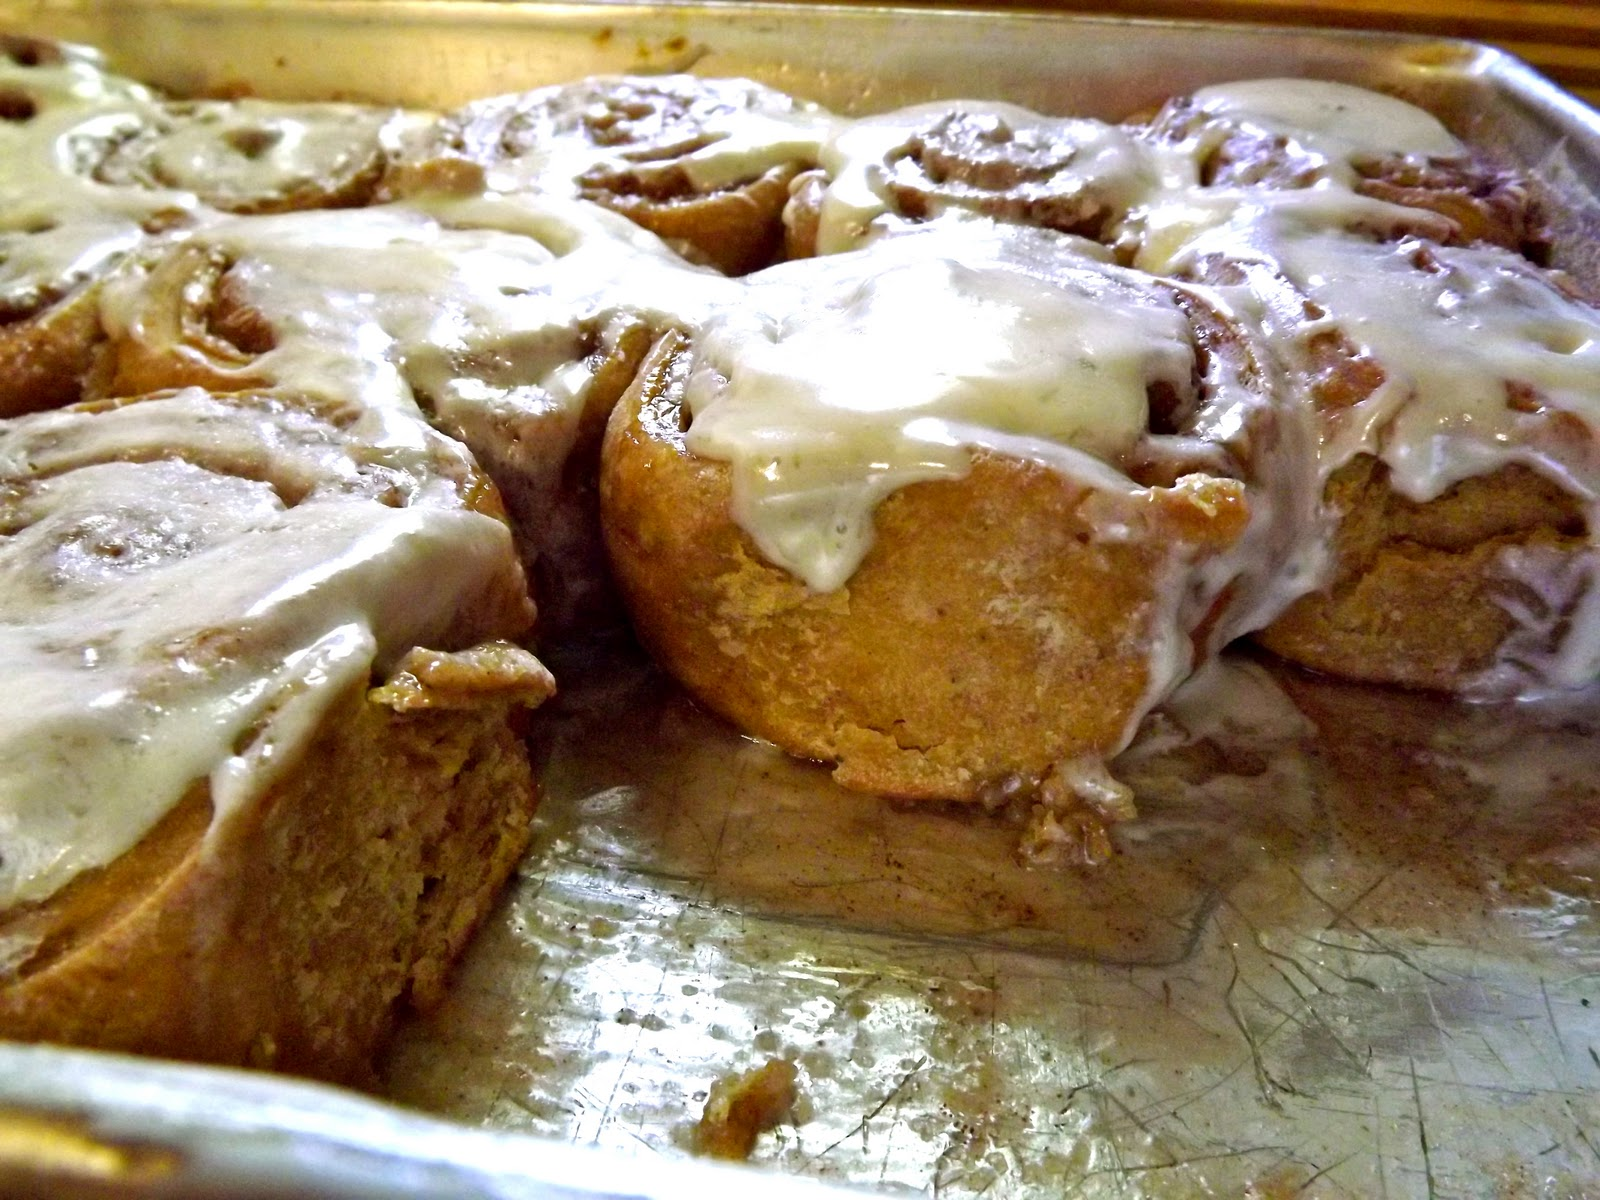 ... Menus and Recipes: Pumpkin Cinnamon Rolls with Cream Cheese Frosting